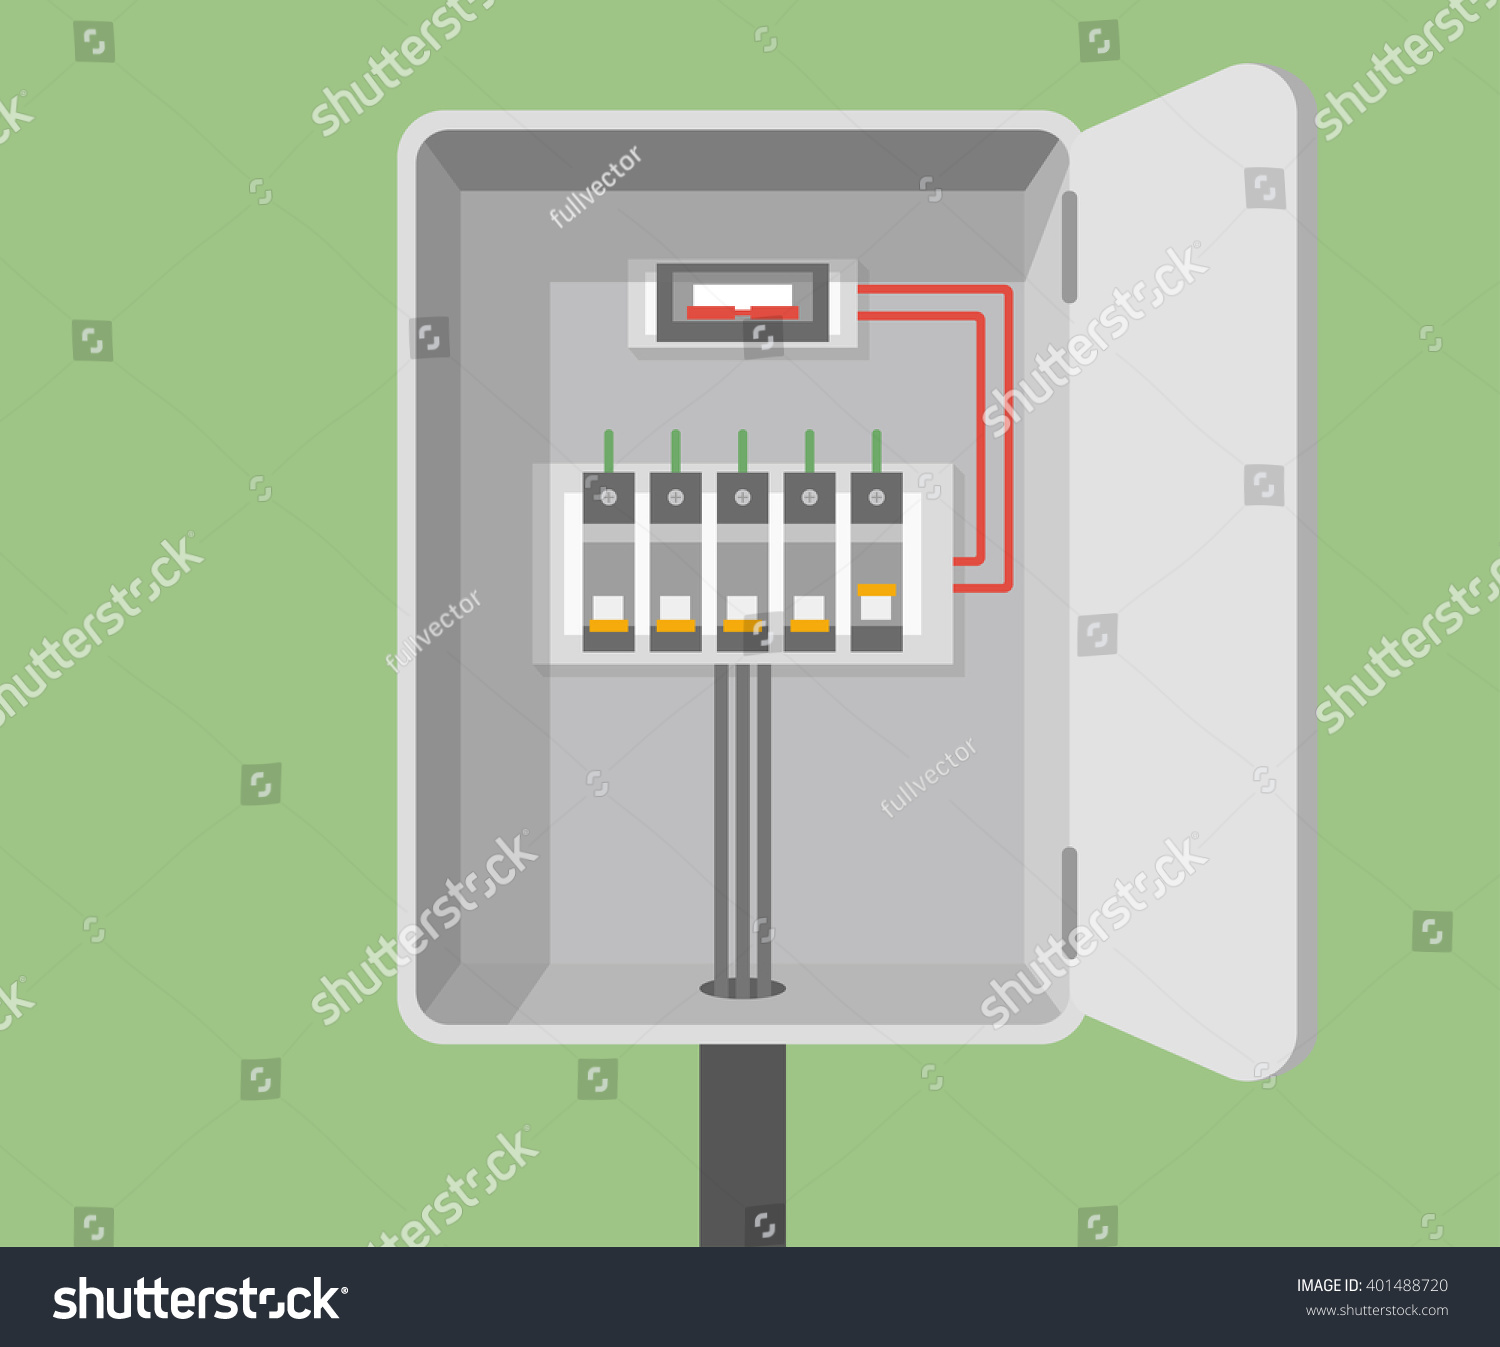 Breakers Vector Flat Circuit Breakers Electrical Stock Vector ...